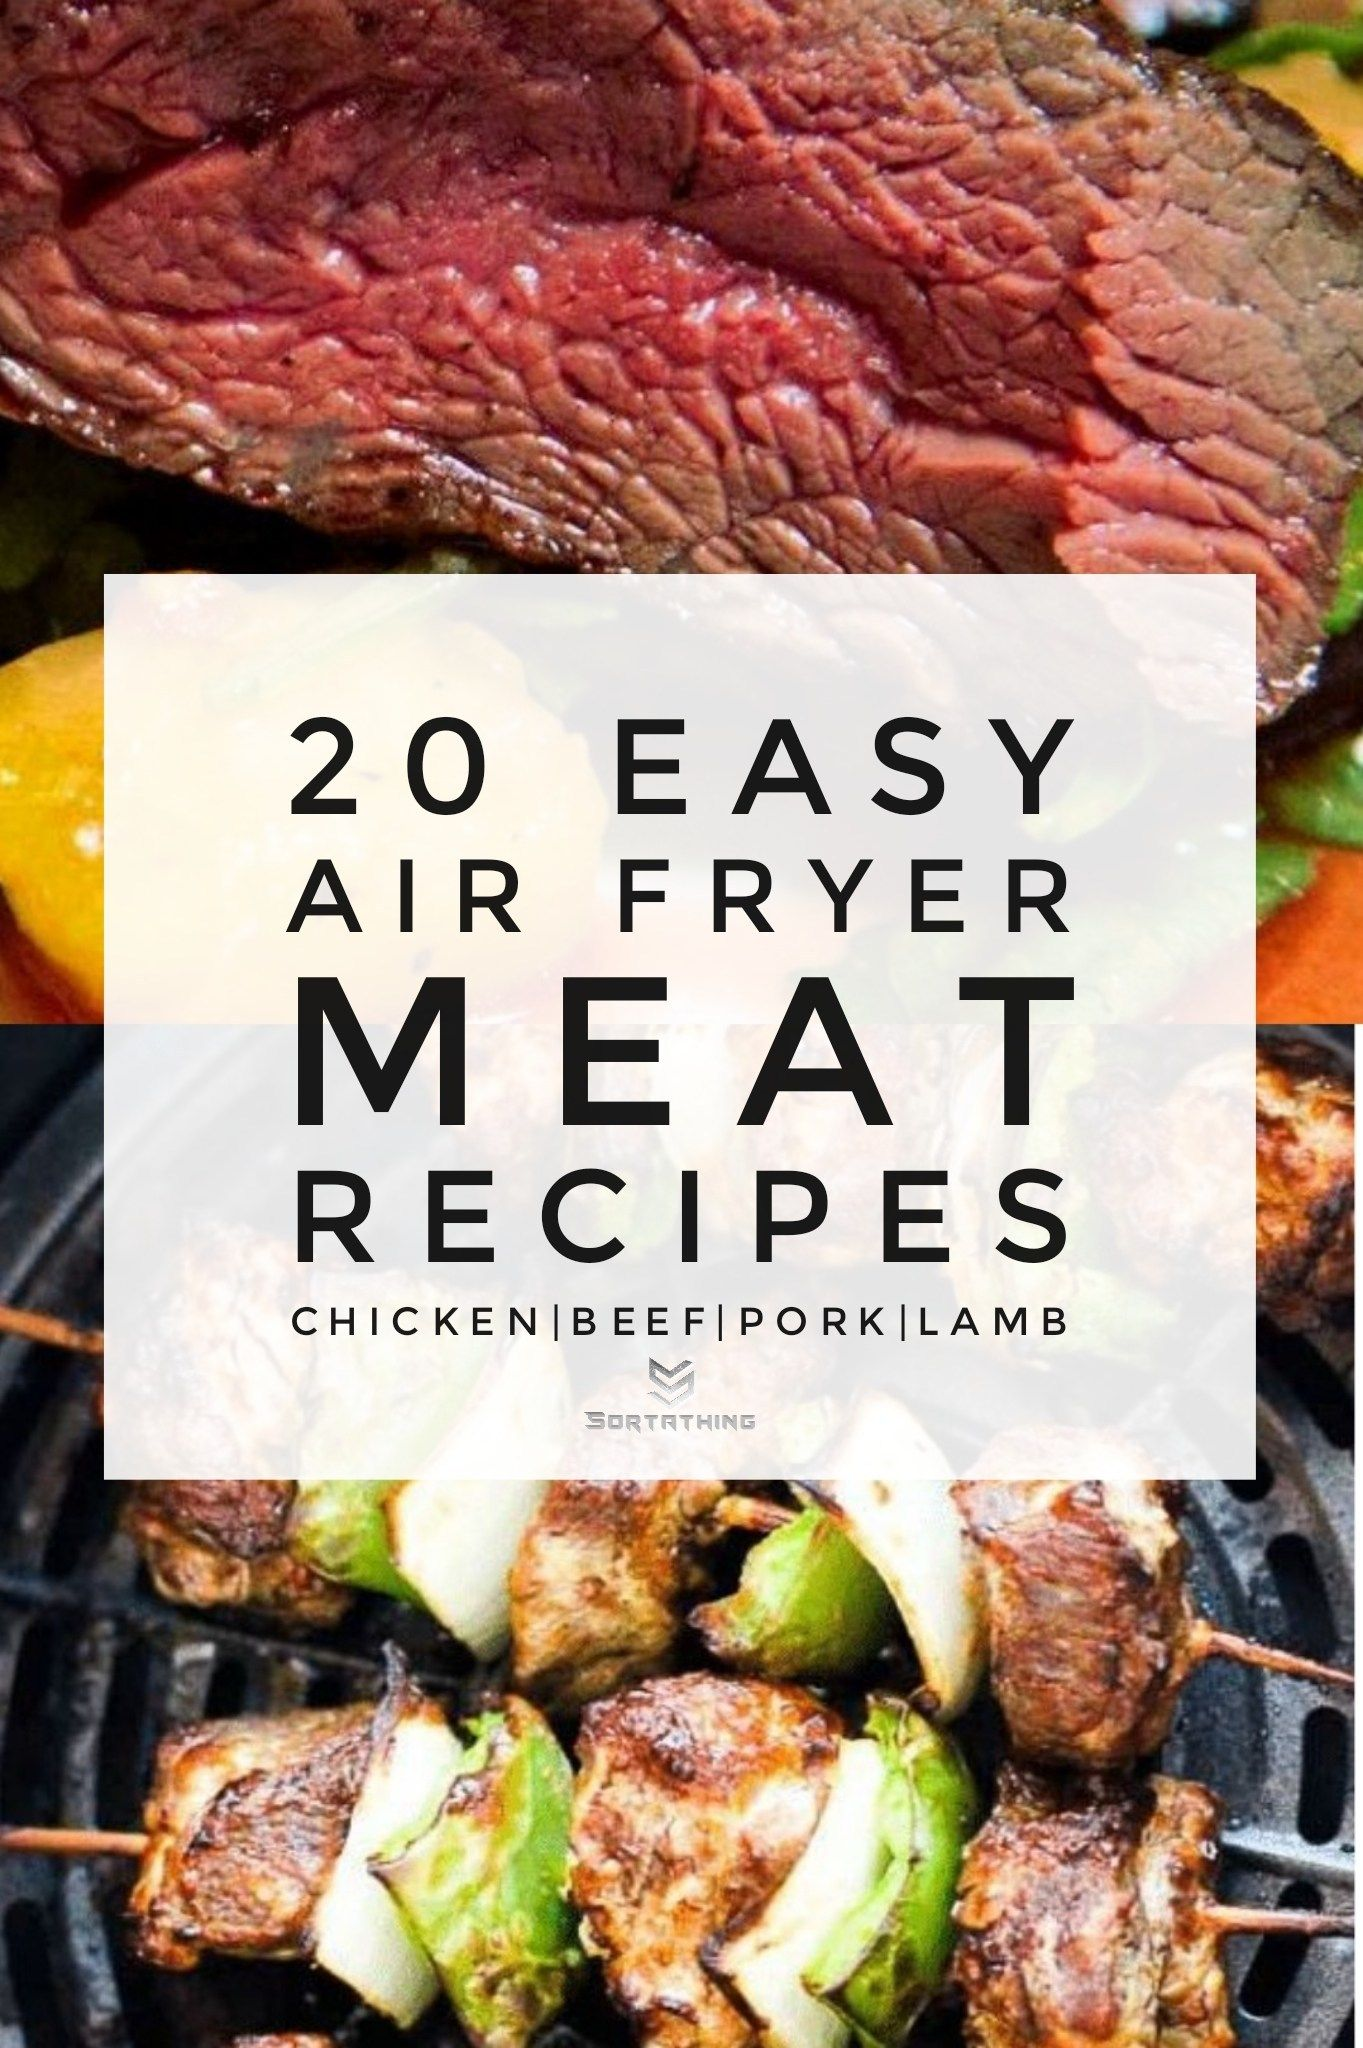 20 Easy Air Fryer Meat Recipes With Chicken Pork Beef Lamb Air Fryer Recipes Healthy Air Fryer Recipes Appetizers Air Fryer Dinner Recipes